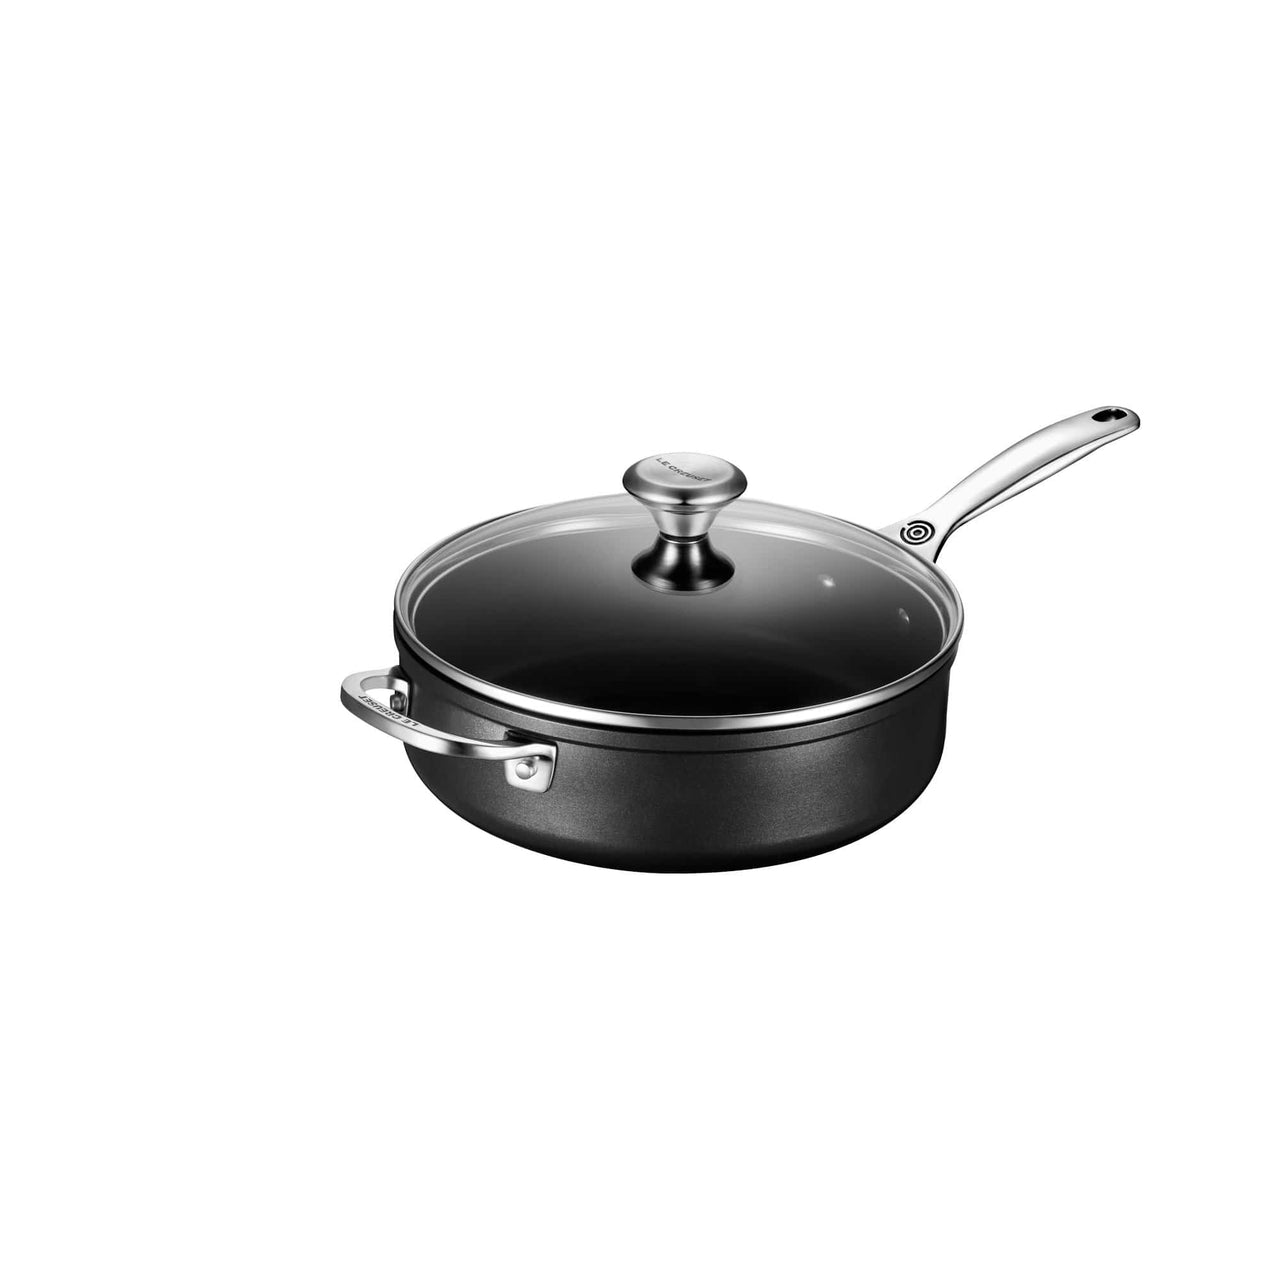 Le Creuset Cookware Toughened Non-Stick PRO 4.25-qt Saute Pan with Helper Handle and Glass Lid